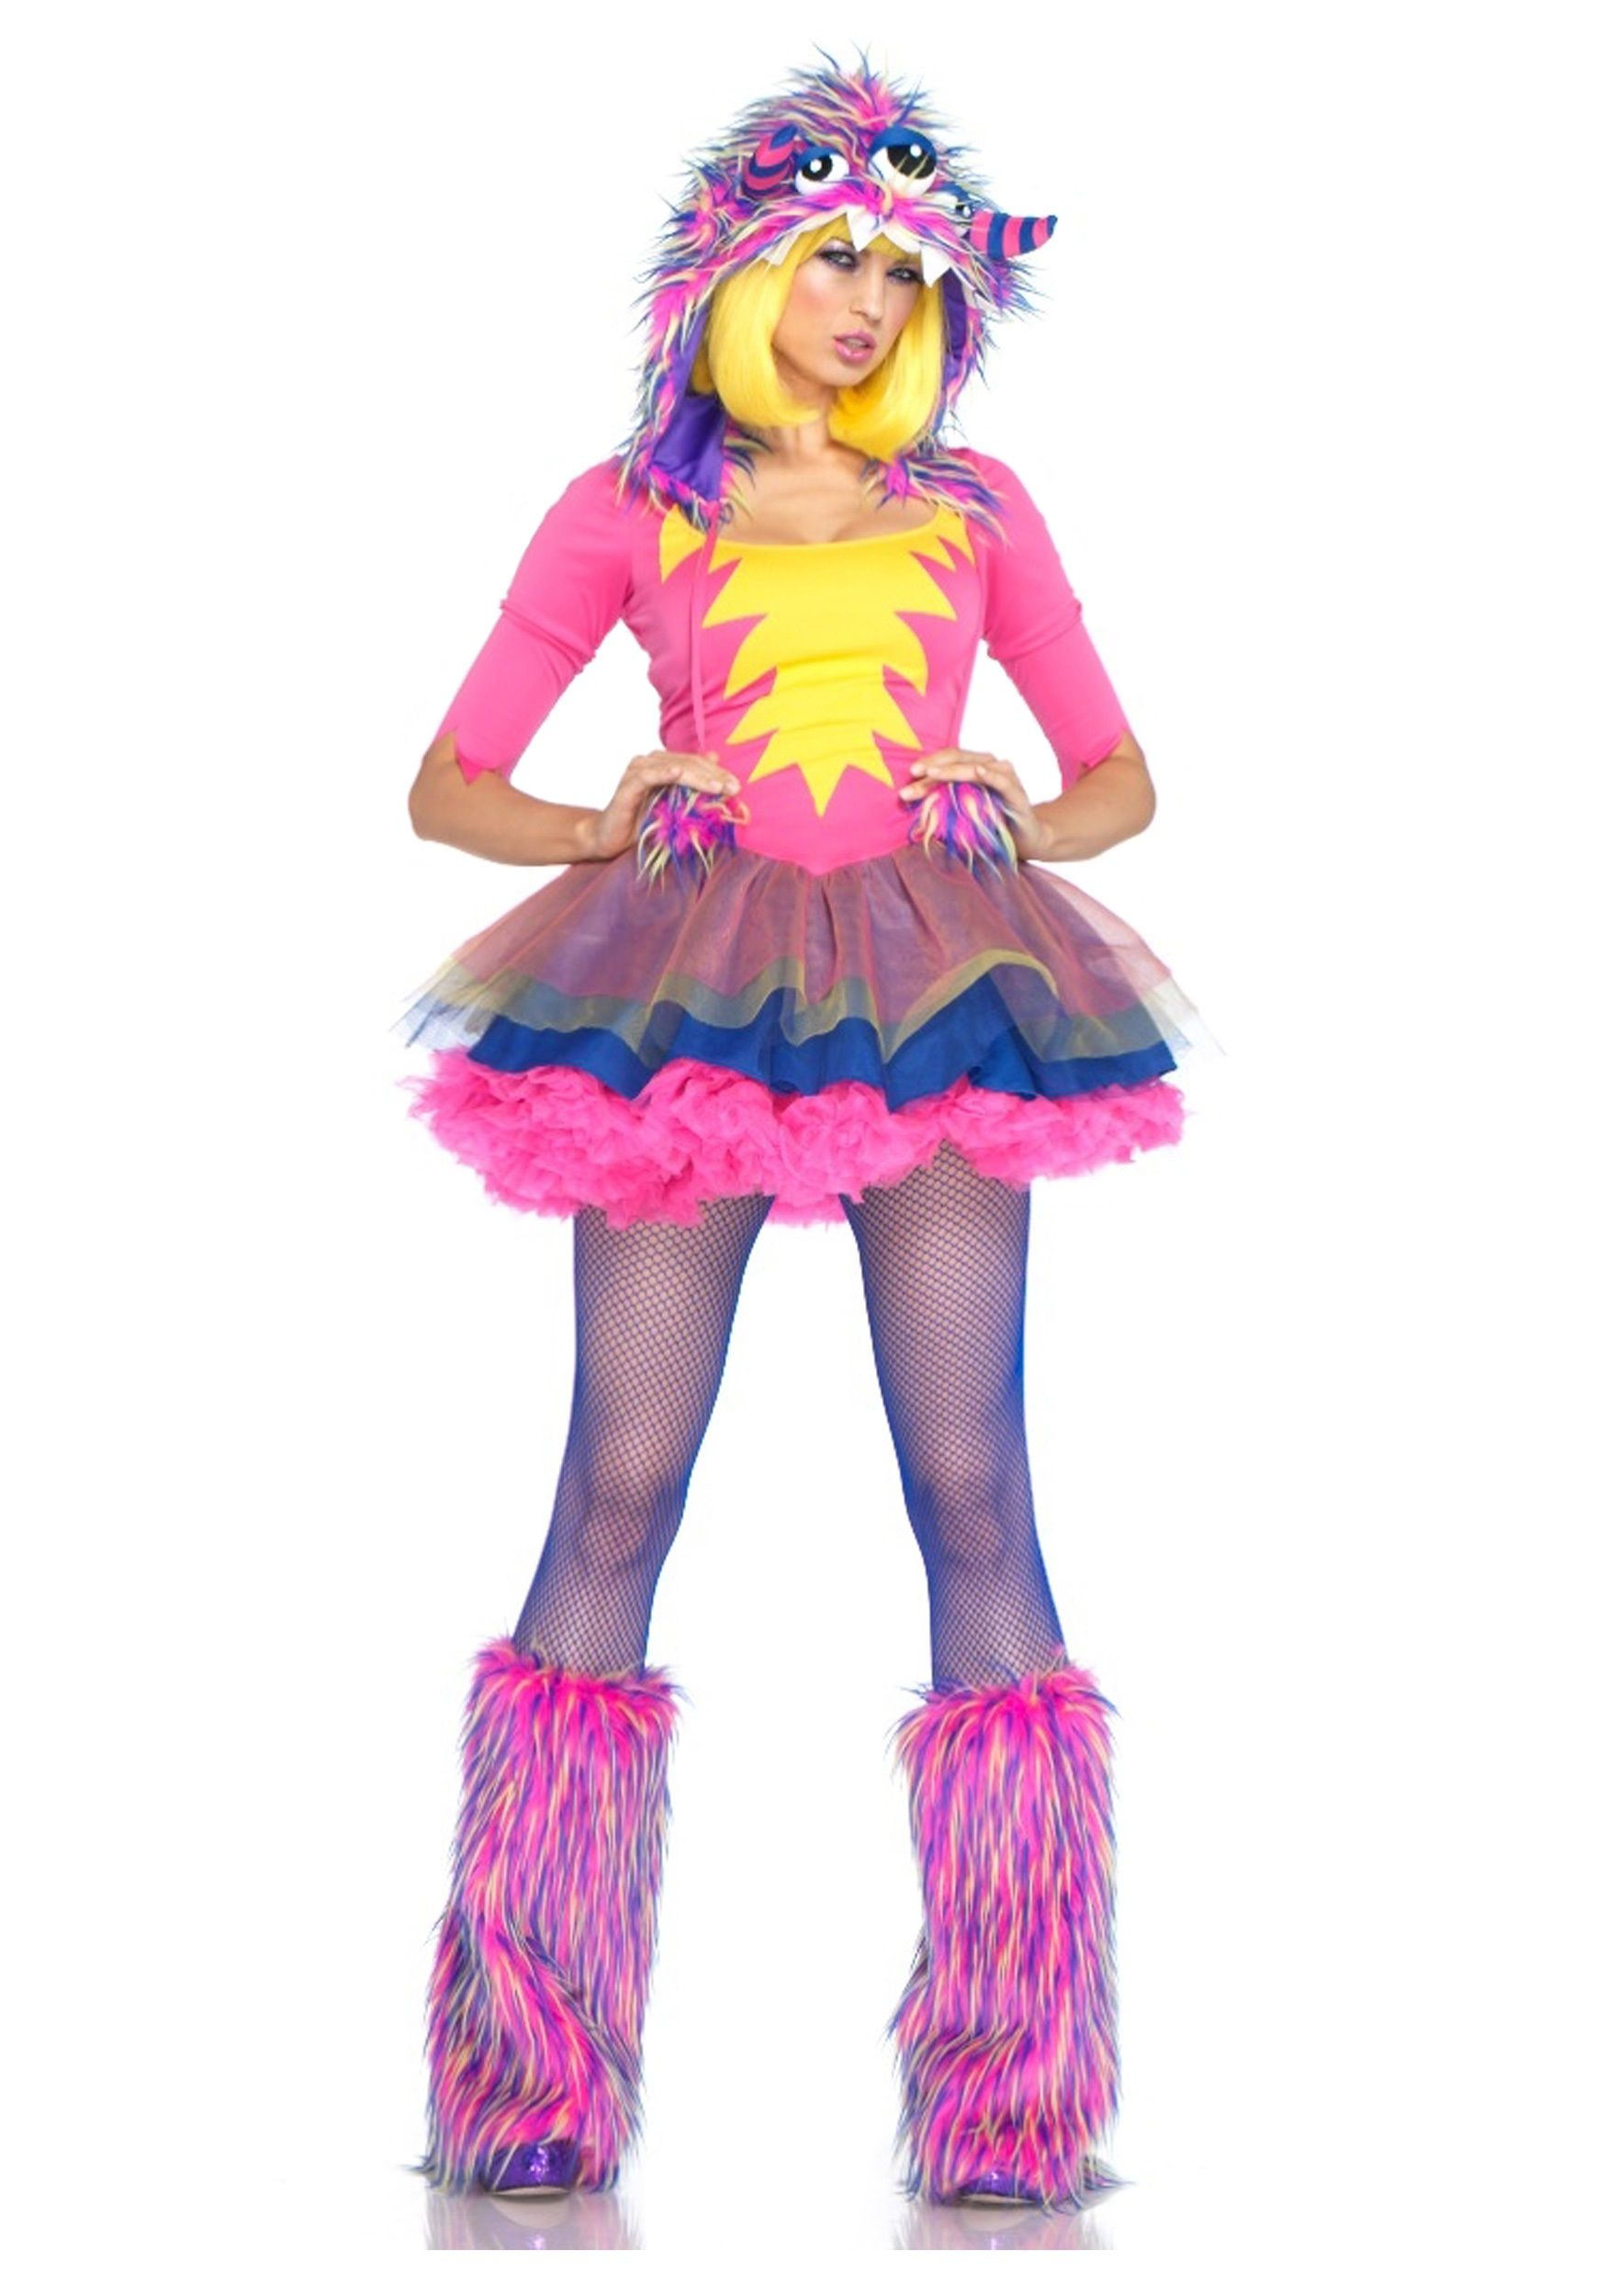 plus size costumes plus size party monster costume - Halloween Costume Plus Size Ideas